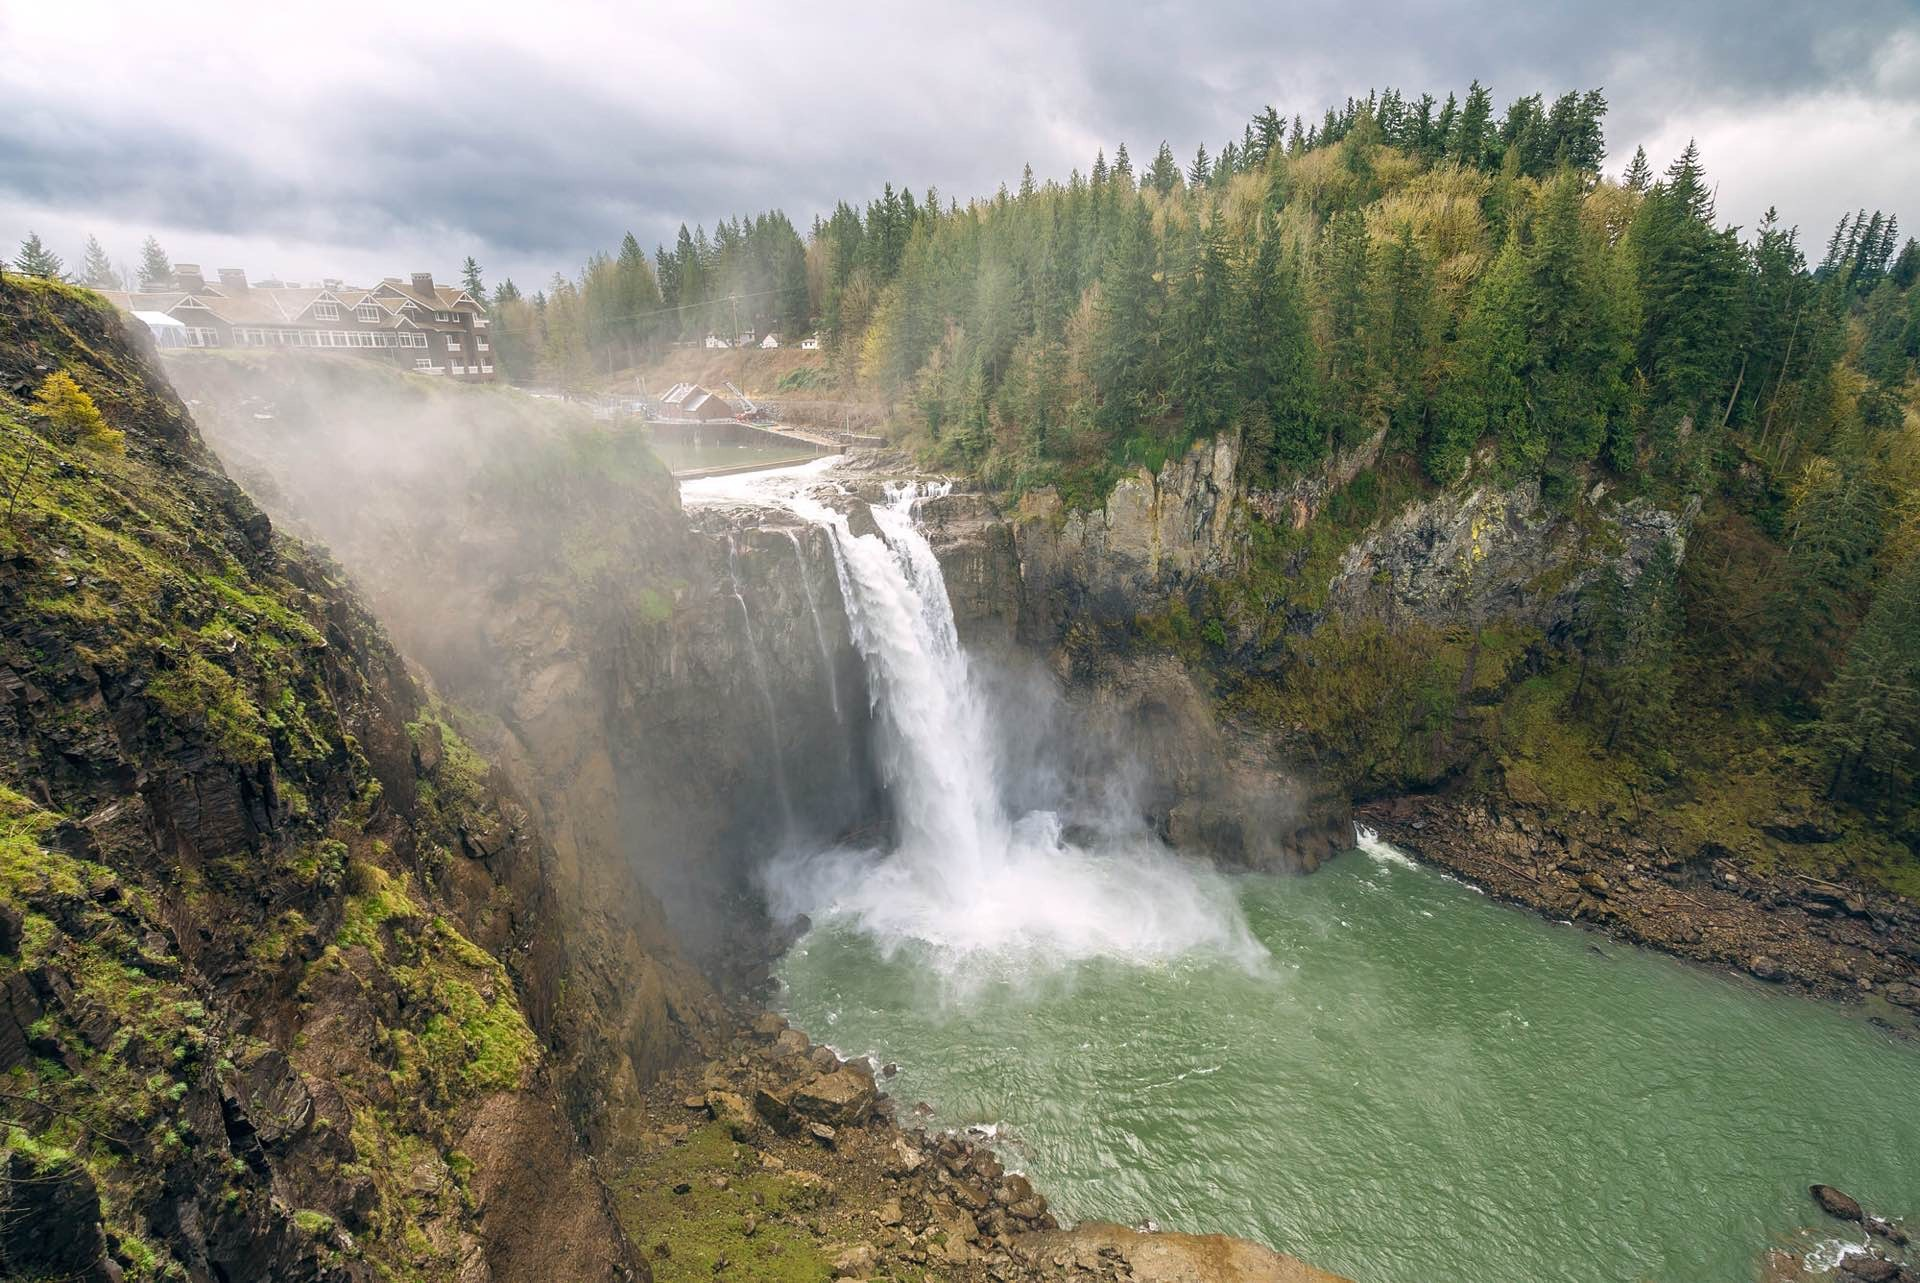 Snoqualmie Falls. Photo: Paul Stamatiou